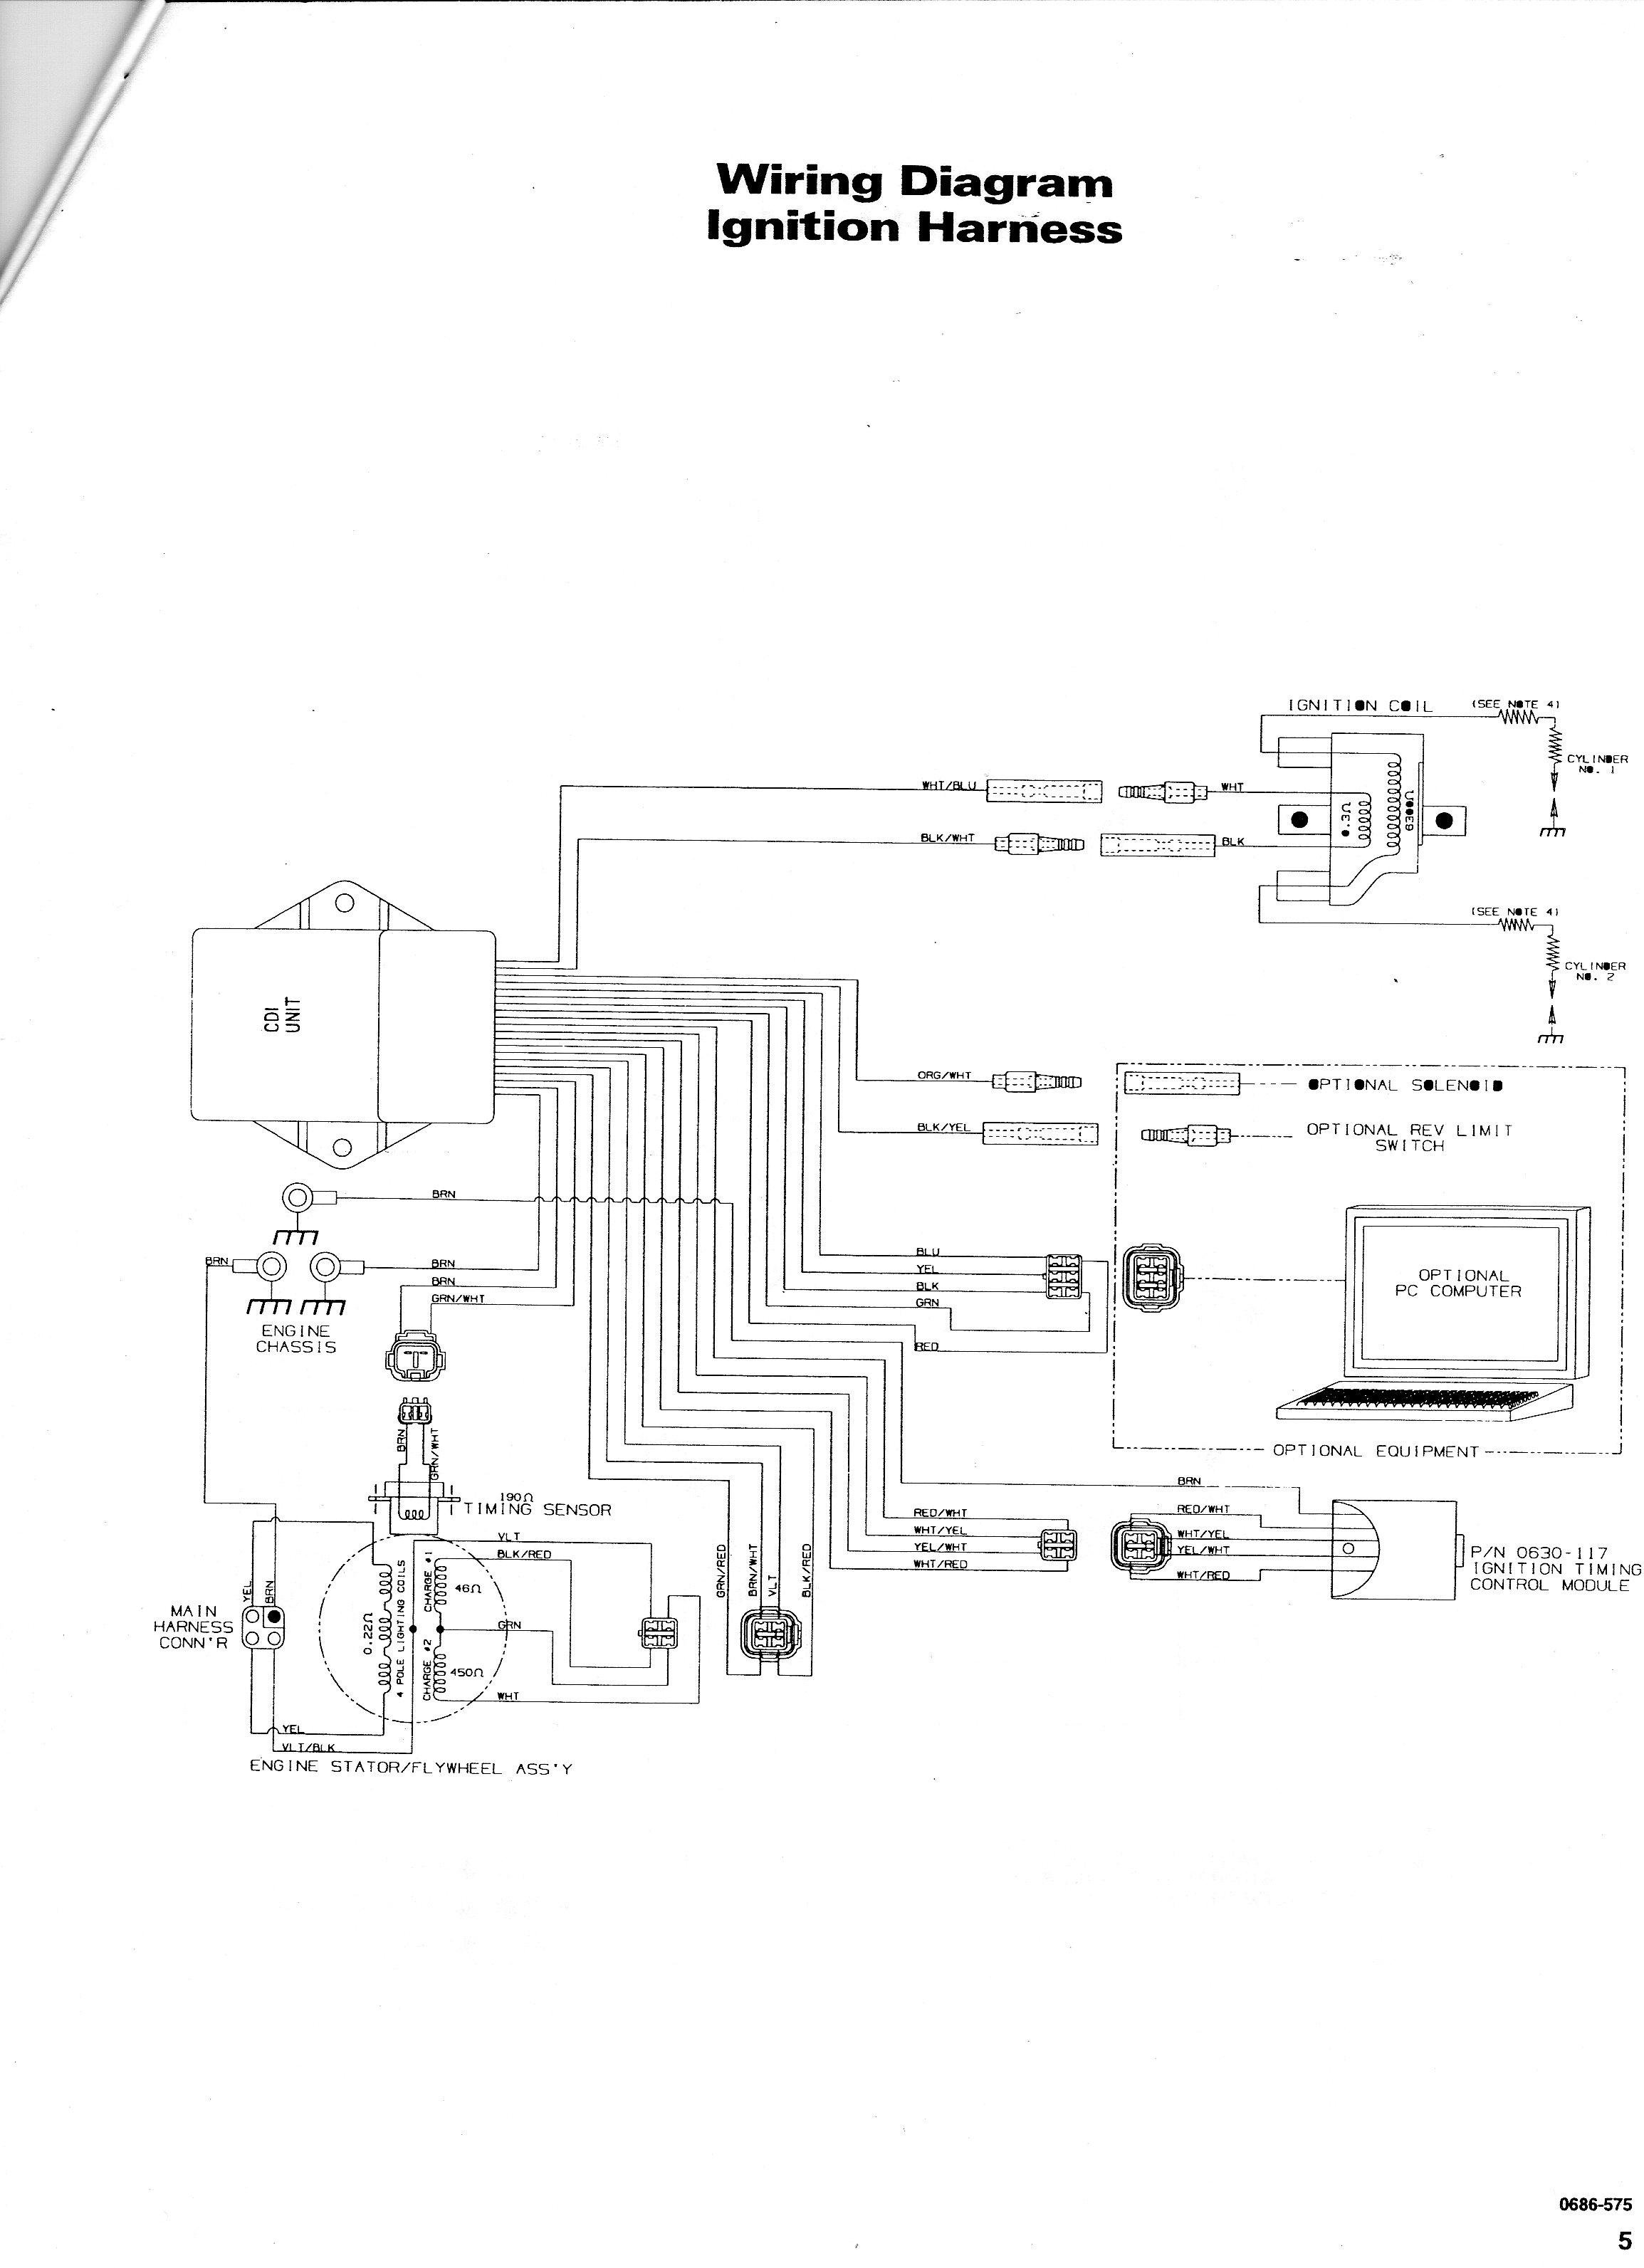 6 Pin Ignition Switch Diagram